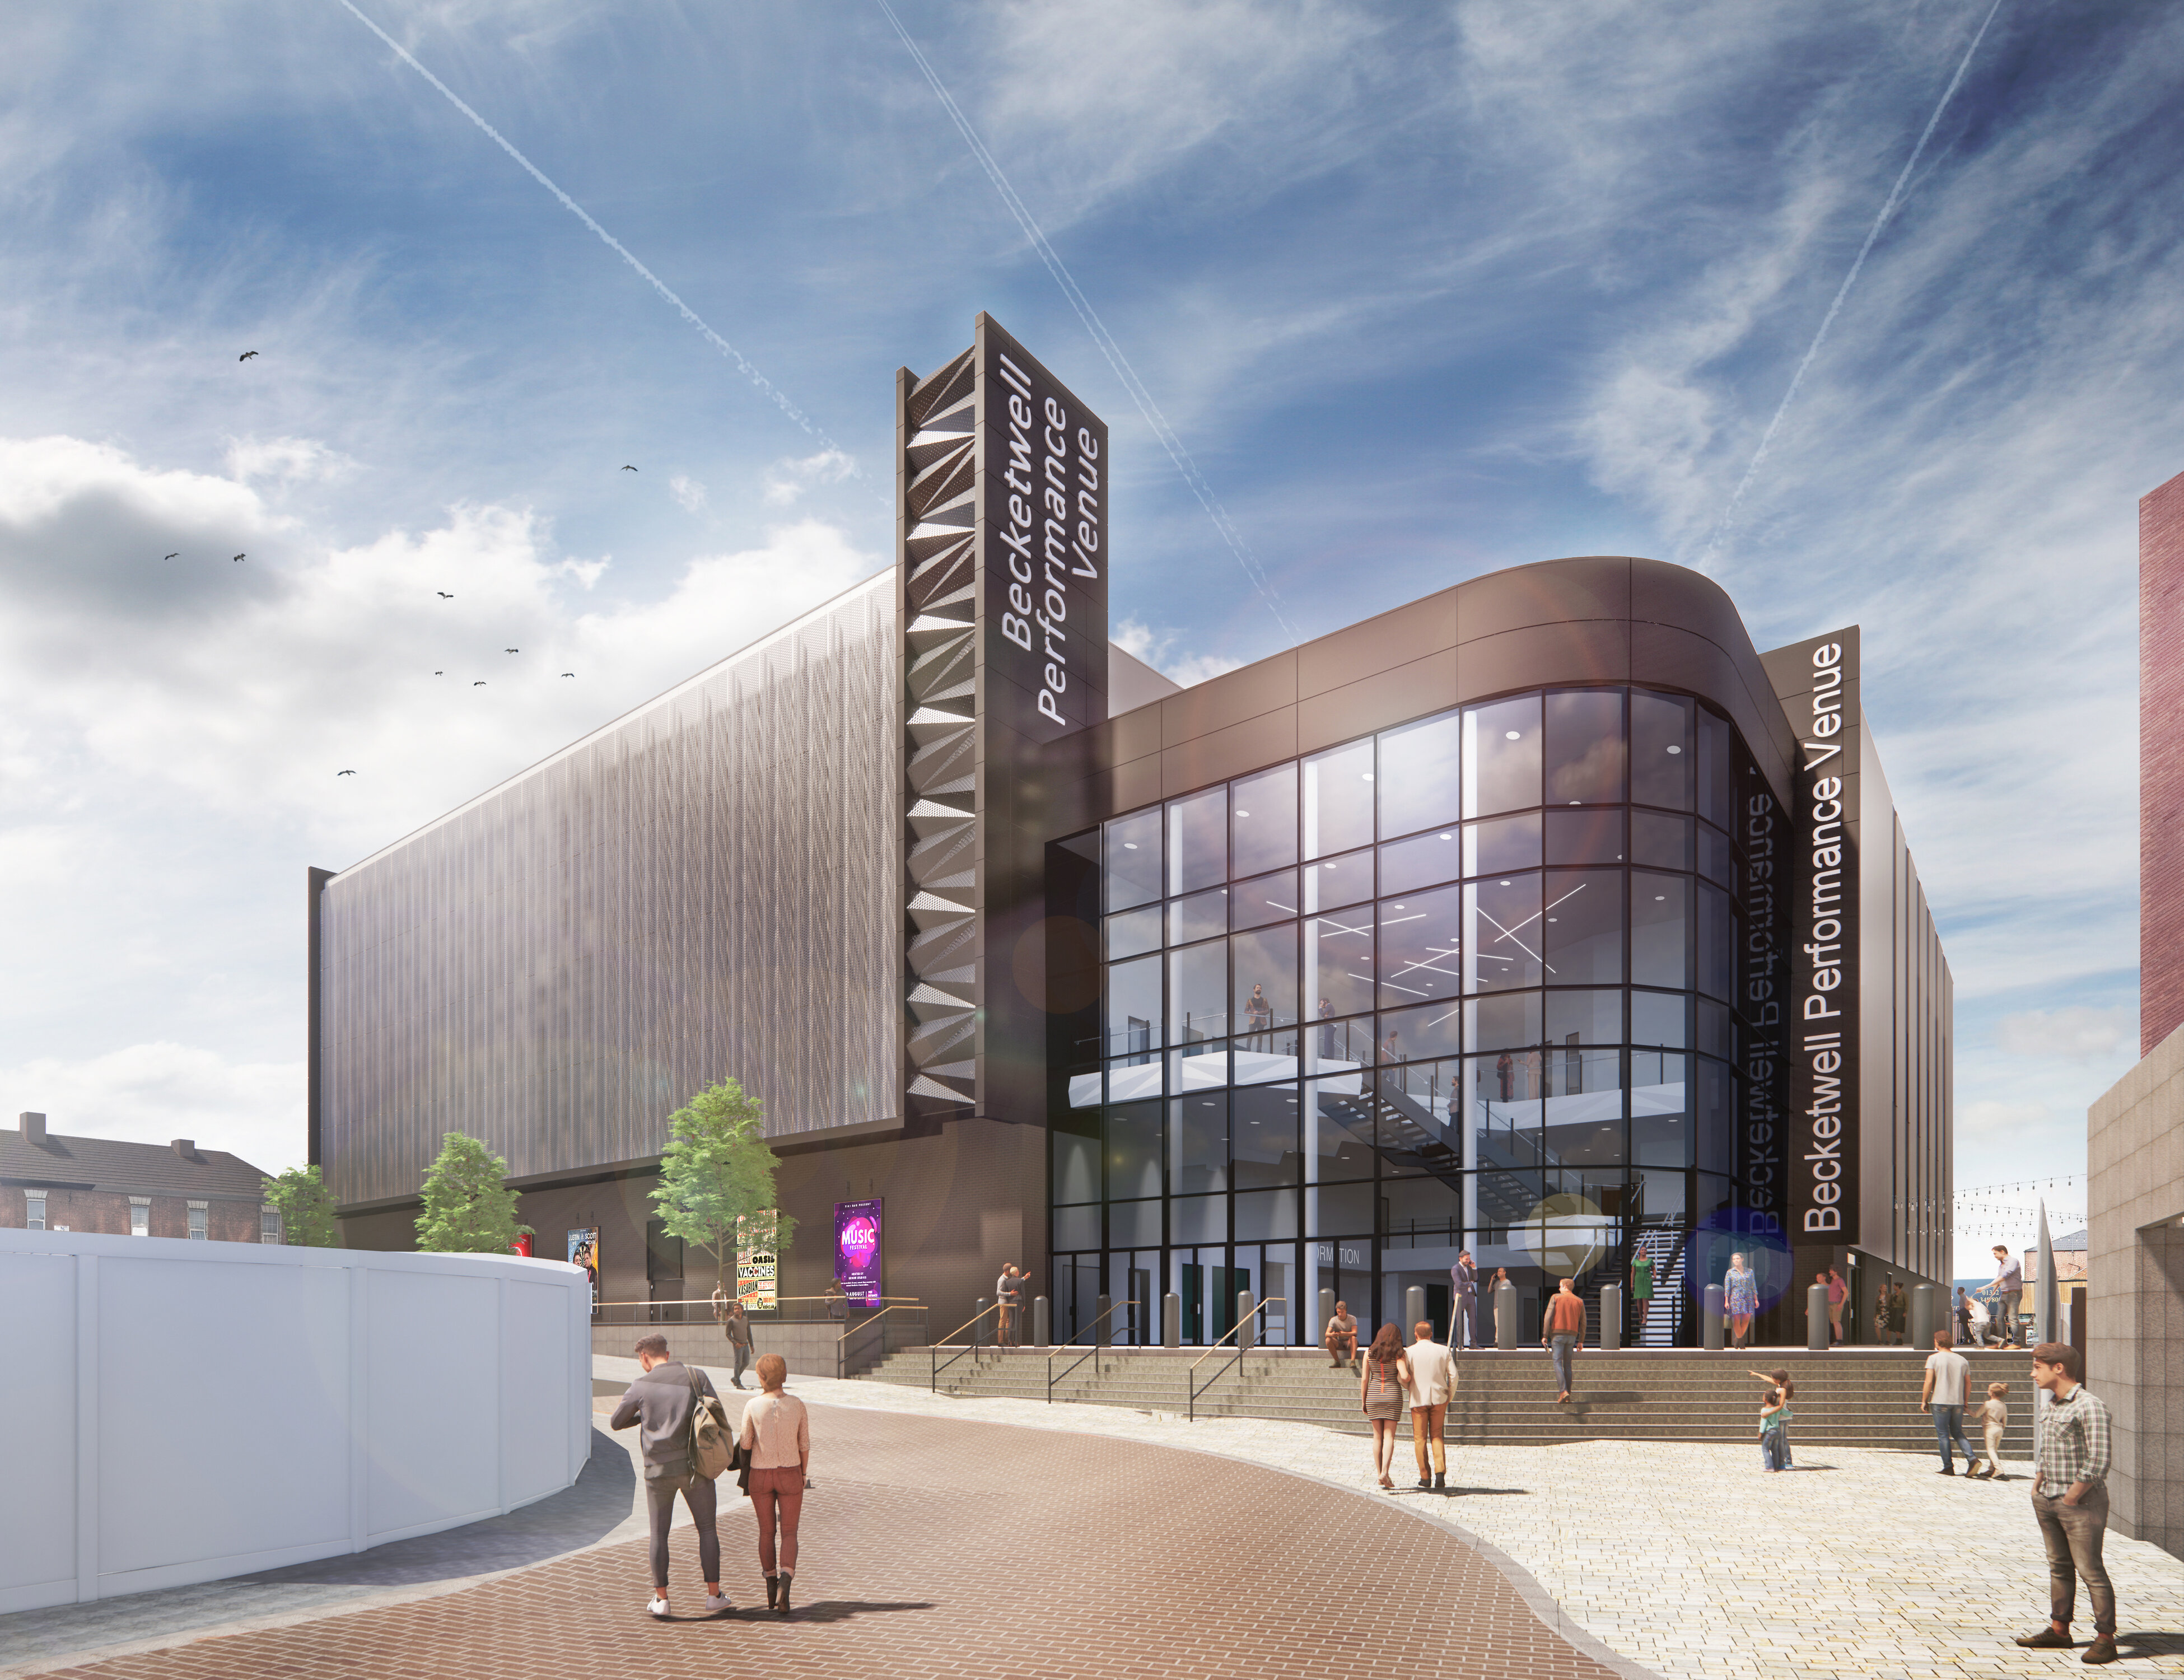 PLANNING APPLICATION SUBMITTED FOR NEW 3,500 CAPACITY PERFORMANCE VENUE AT BECKETWELL DERBY